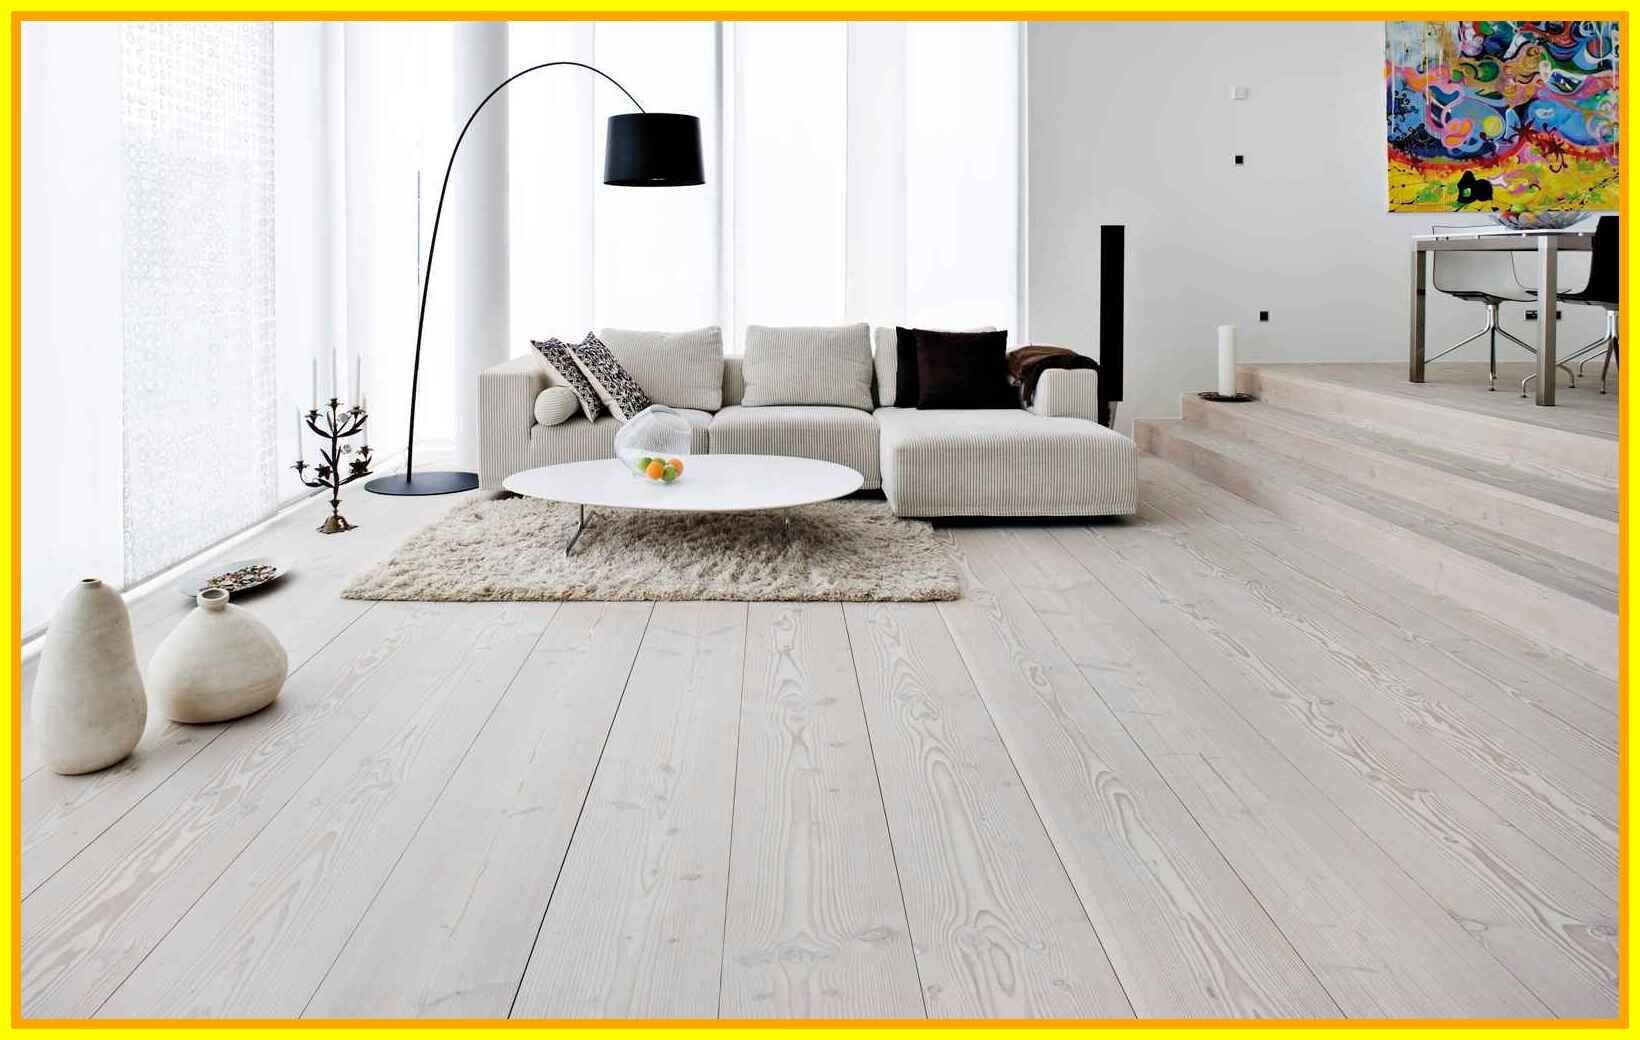 38 Reference Of Flooring Ideas Inexpensive Laminate Flooring In 2020 Living Room Wood Floor White Wood Floors Grey Wood Floors Living Room